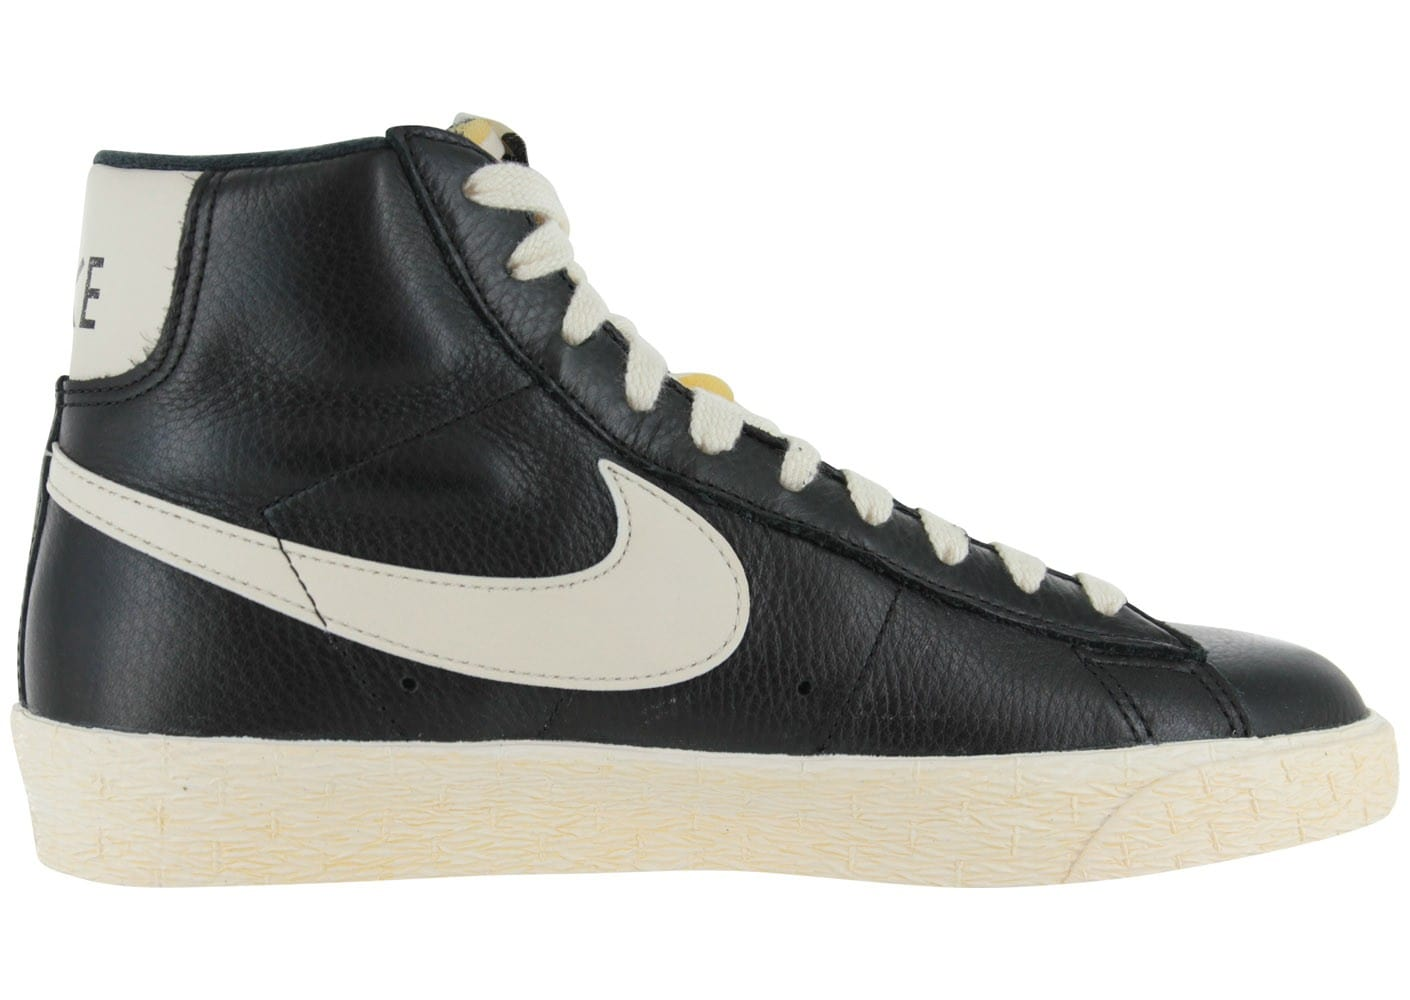 nike blazer cuir noire chaussures chaussures chausport. Black Bedroom Furniture Sets. Home Design Ideas